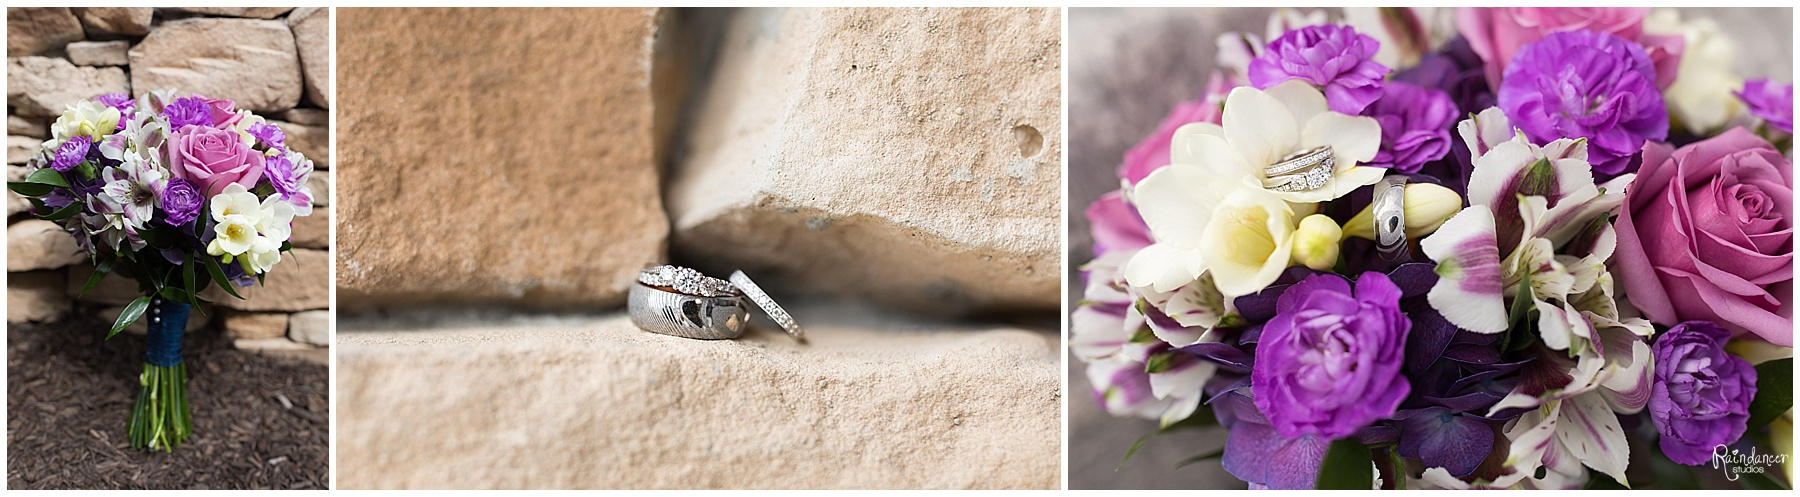 Wedding rings with bride bouquet by Raindancer Studios Indianapolis Wedding Photographer Jill Howell